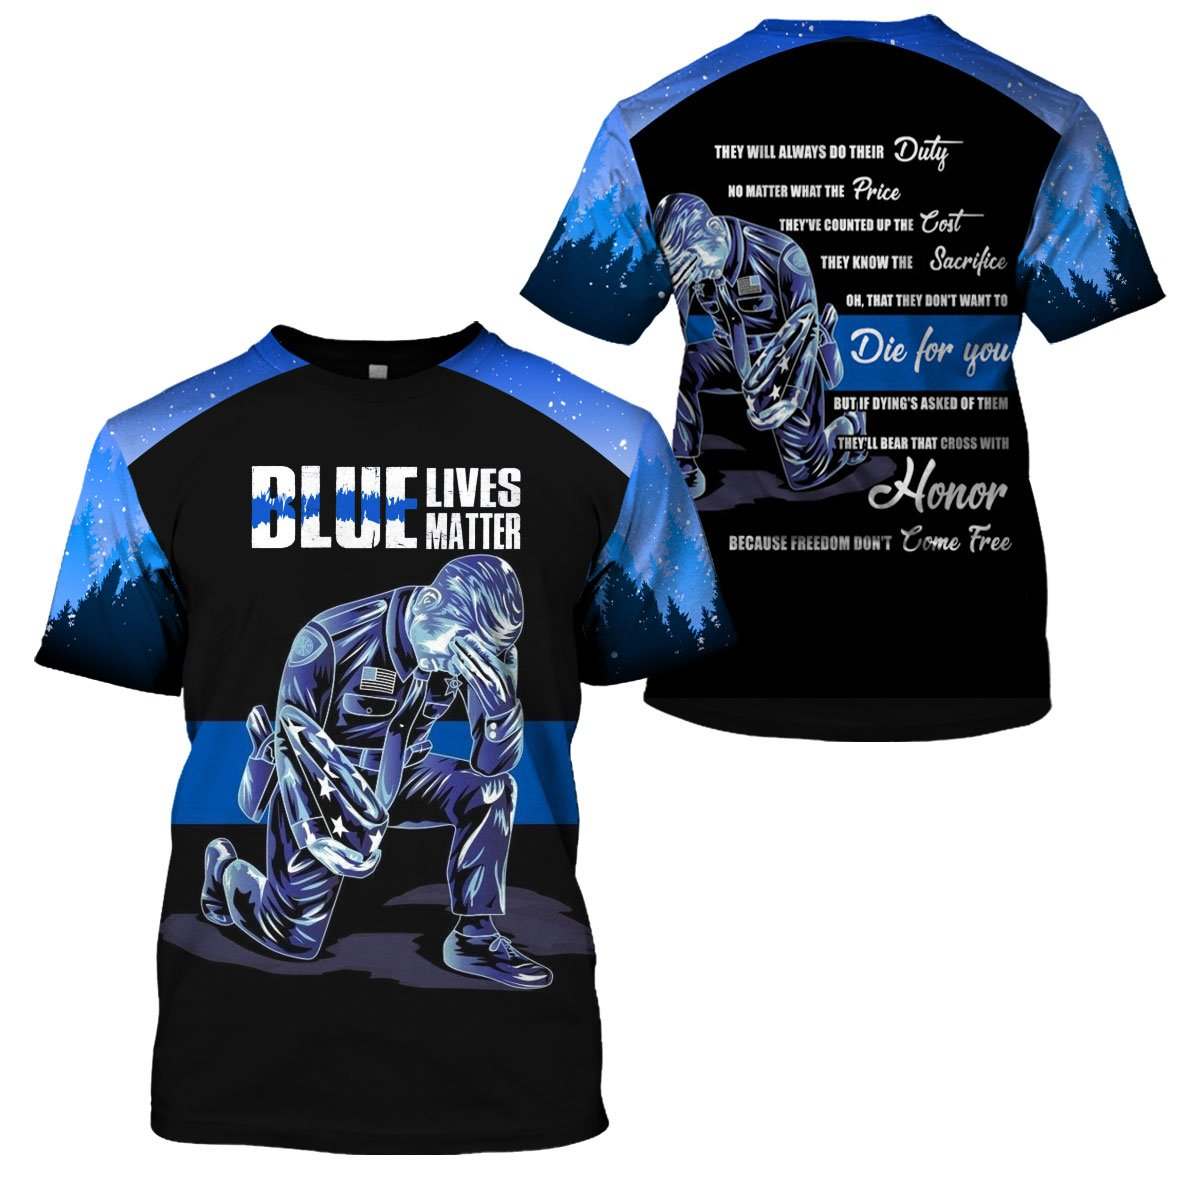 3D Police Apparel - Blue Lives Matter Limited Edition - 4zOutfitters Merchandise